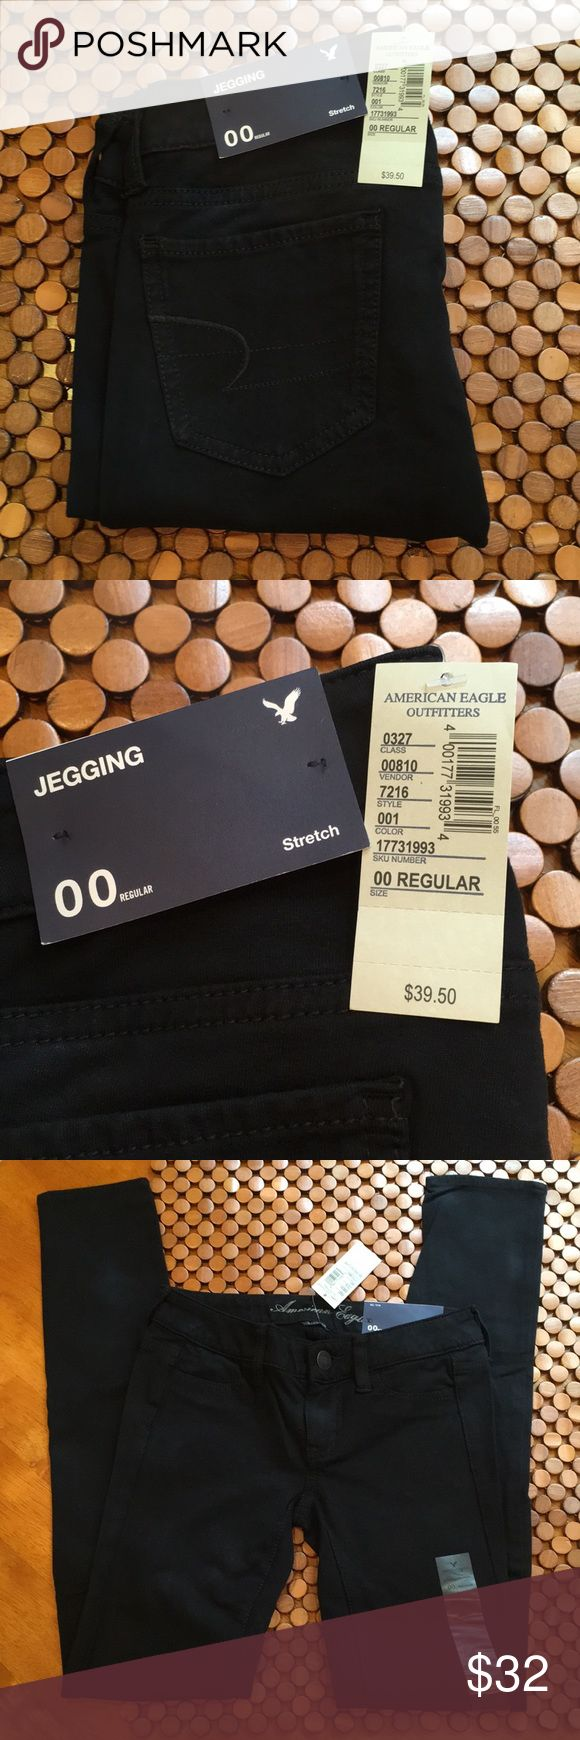 """American Eagle Jeggings NWT size 00 Super sexy black stretch jeggings by American Eagle. New, with tags - I just took them out of the bag to post. These are an amazing soft material and the tag reads 95% cotton 5% spandex. These are not a heavy denim. These are a cozy and soft fabric that hugs your body without being restrictive. They wear sold online as jeggings/jeans but are a little more like a jegging/pant. You can wear these all 4 seasons. Inseam is about 30"""". They are low-rise with the…"""